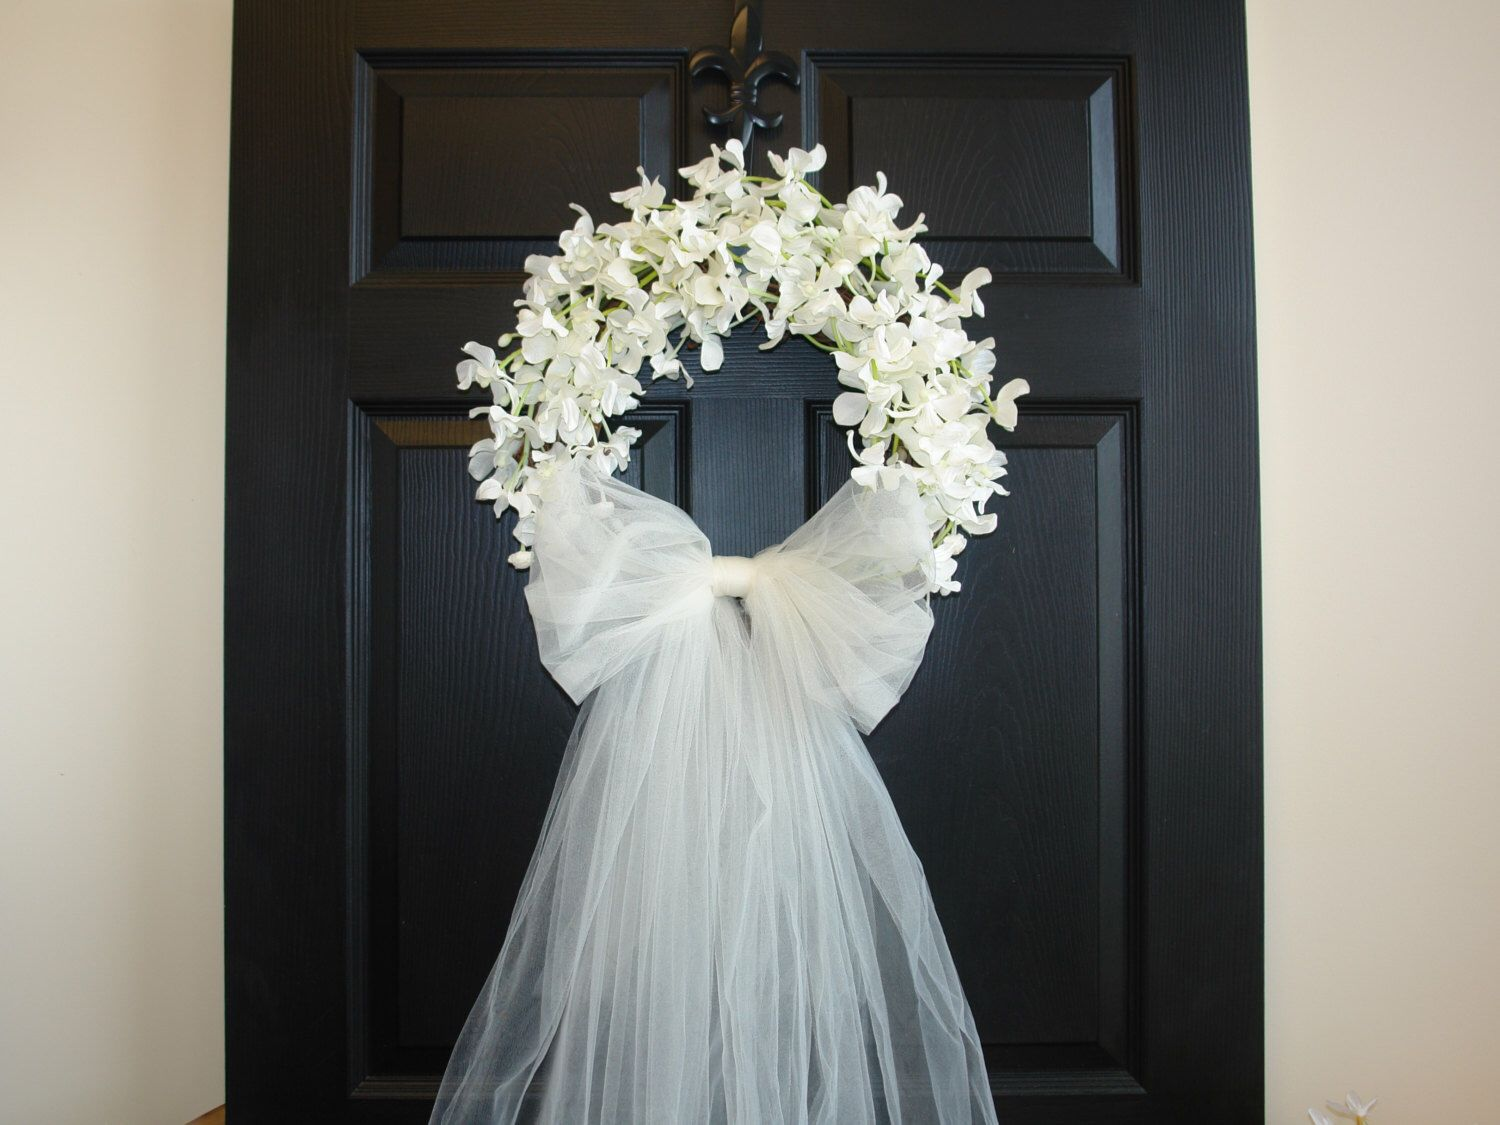 Weddings door wreaths first communion front door outdoors for Wedding door decorating ideas